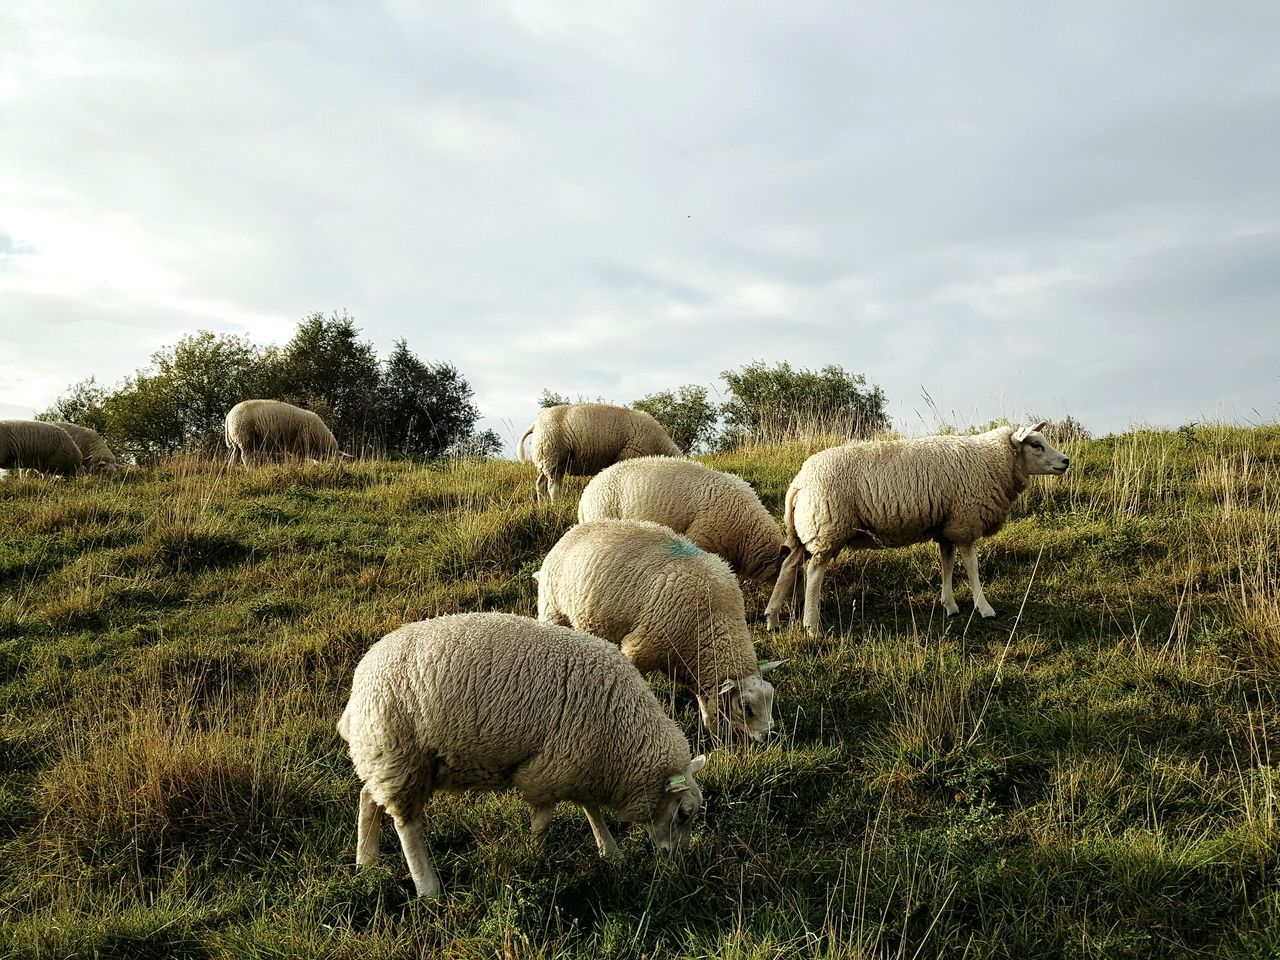 Nature Landscape Cloud - Sky Animal Themes Beauty In Nature Animal Animals Animal Photography Animal_collection Animal Eye Sheep Sheeps Sheep🐑 Horticulture Grass Grassland Taking Photos Taking Pictures Grassing Mammal Dutch Landscape Dutch Countyside Dutch Countryside